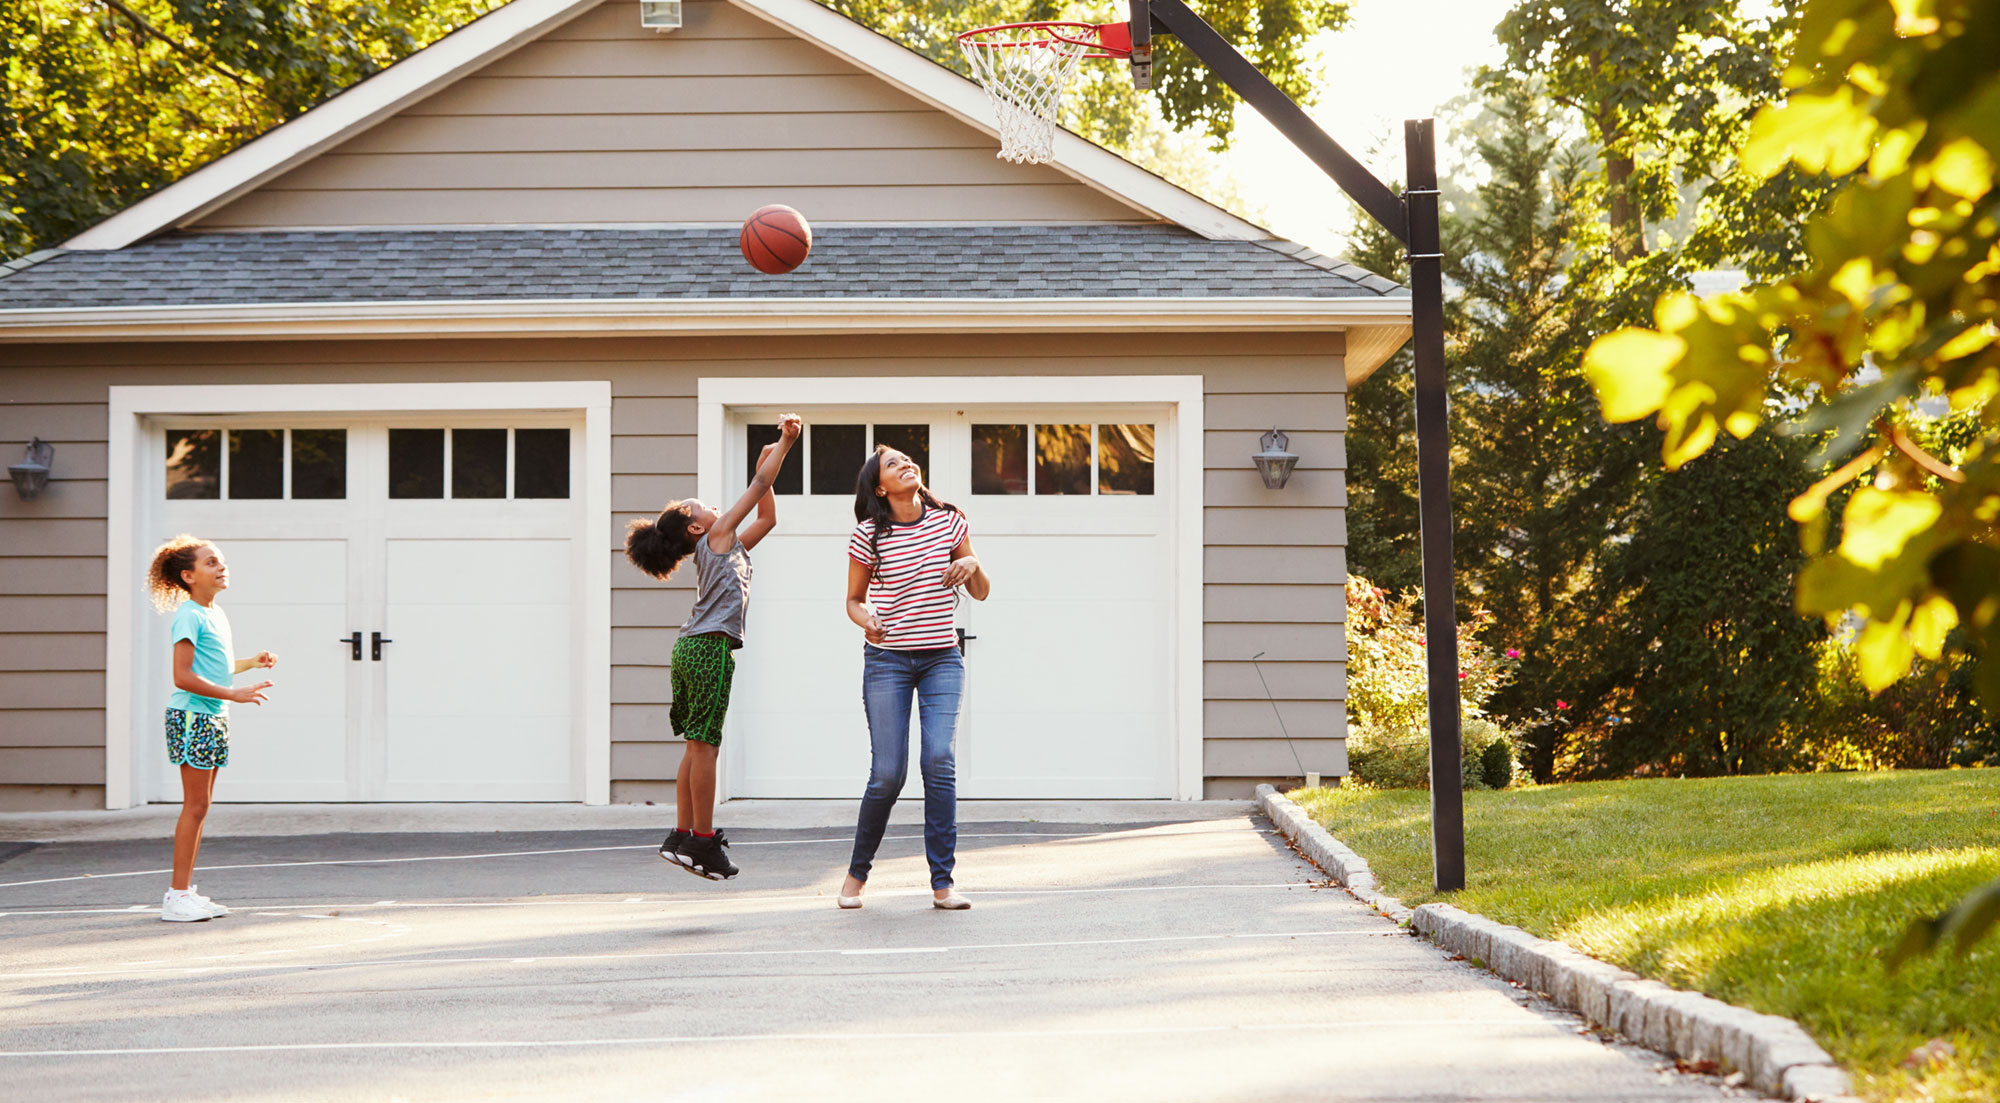 Kids playing basketball in driveway in suburbs